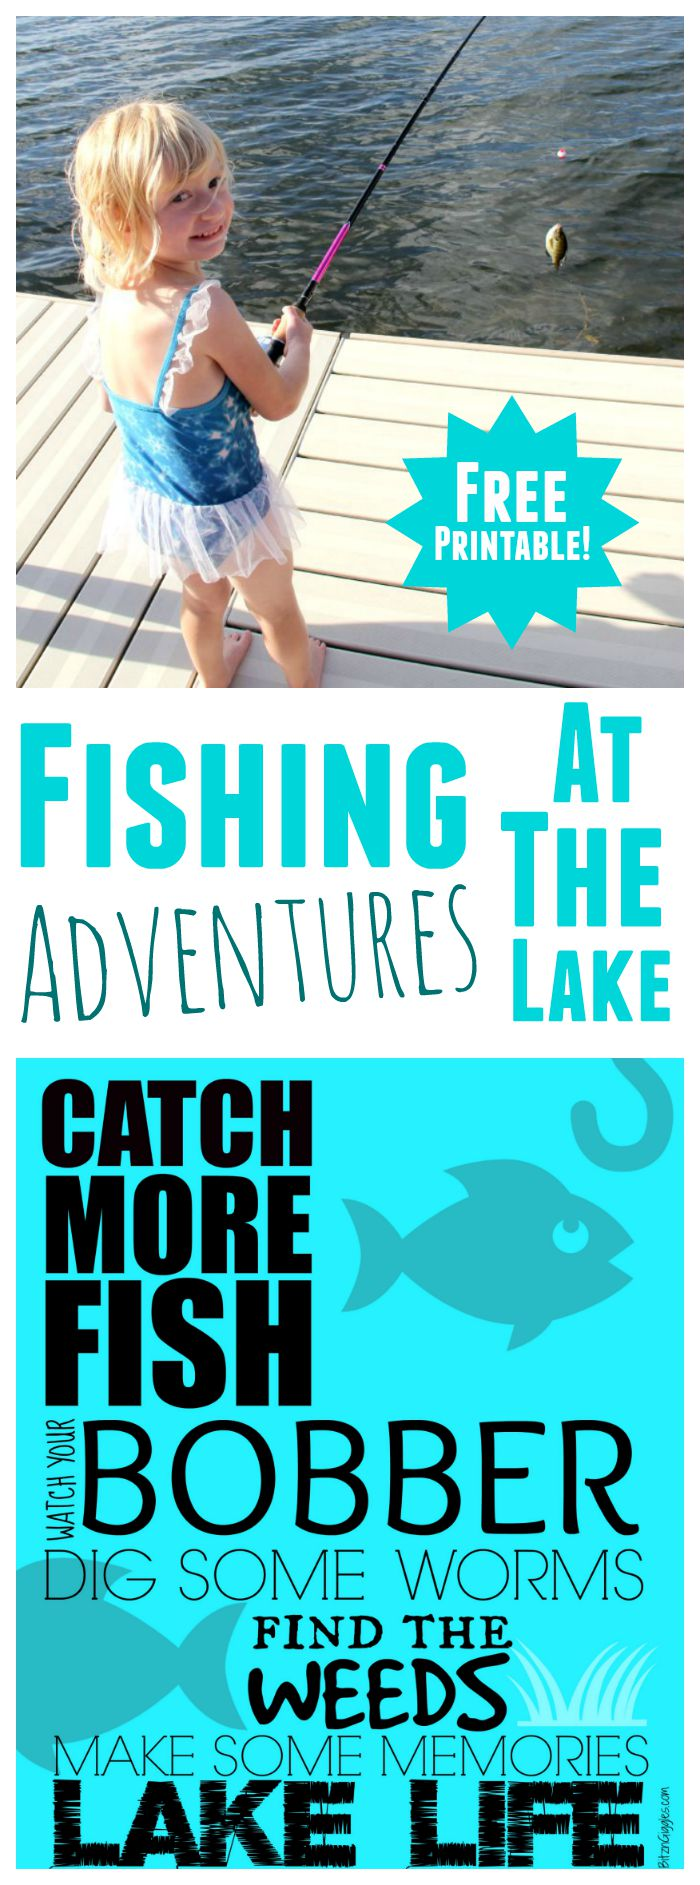 Catch More Fish Printable - Fun, free printable great for displaying in the camper or up at the lake!